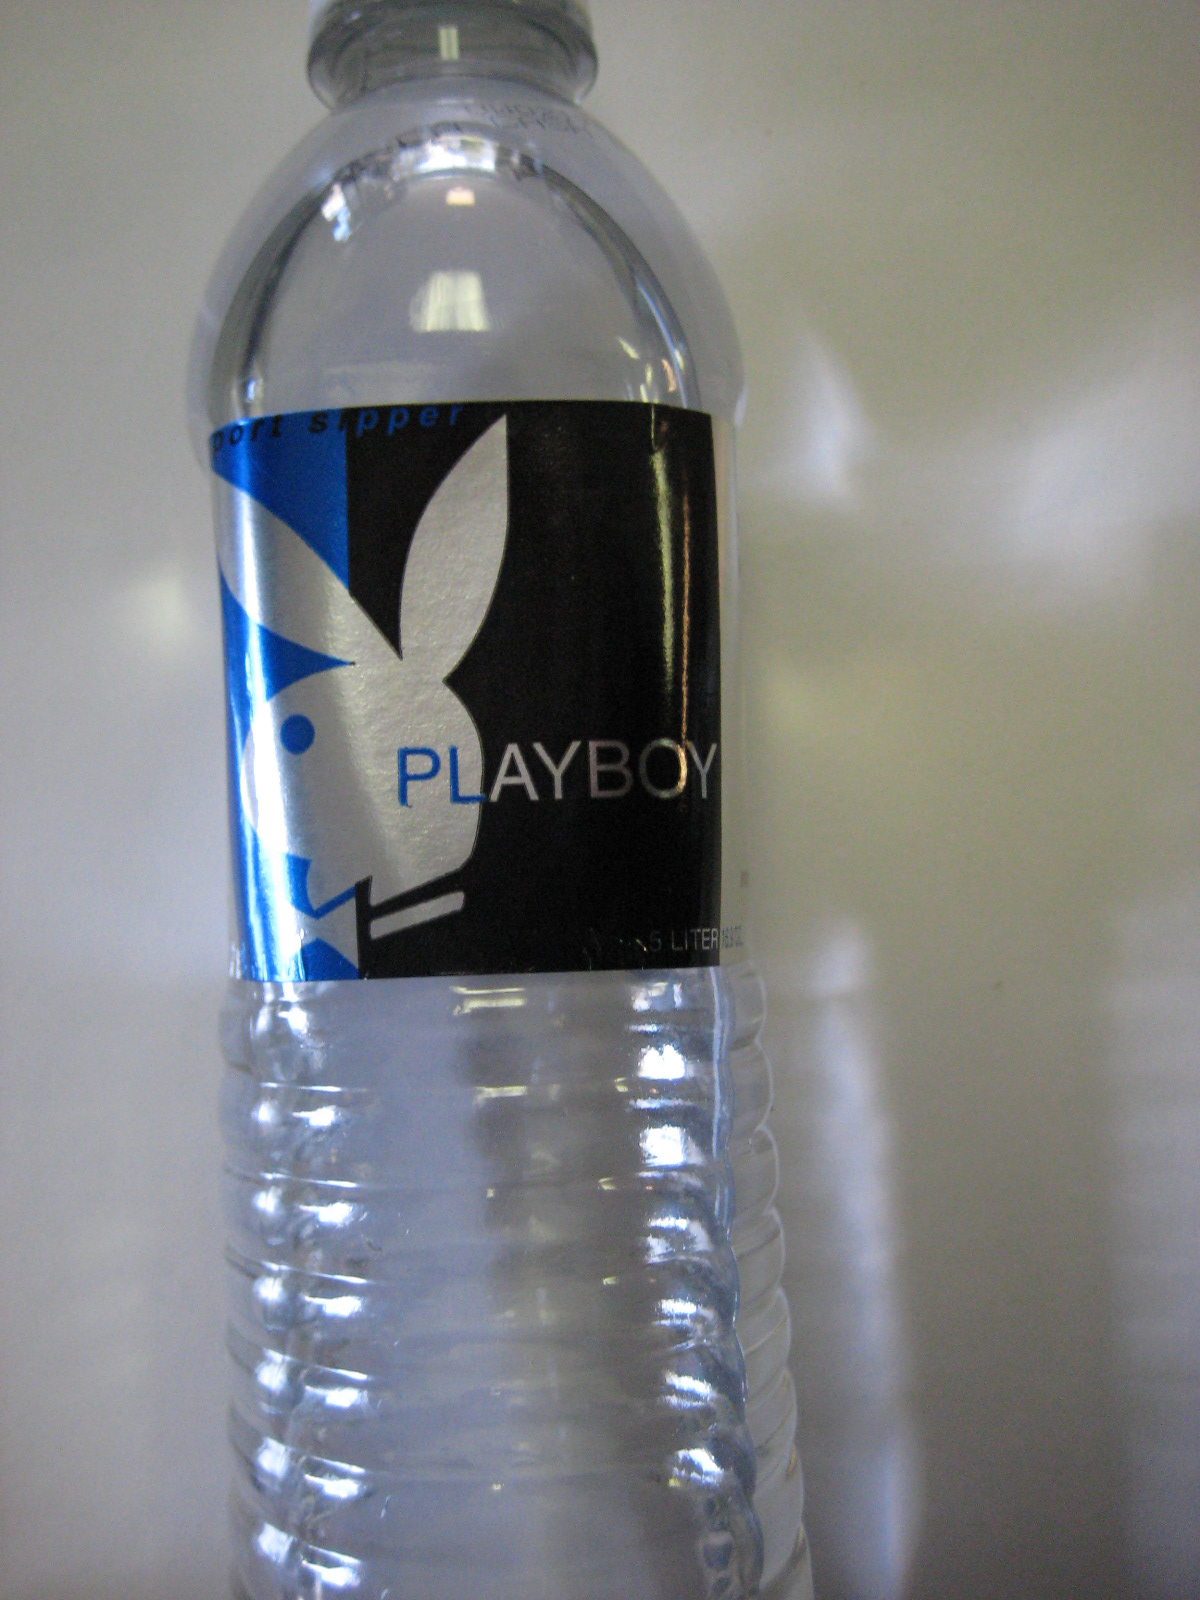 Playboy Water